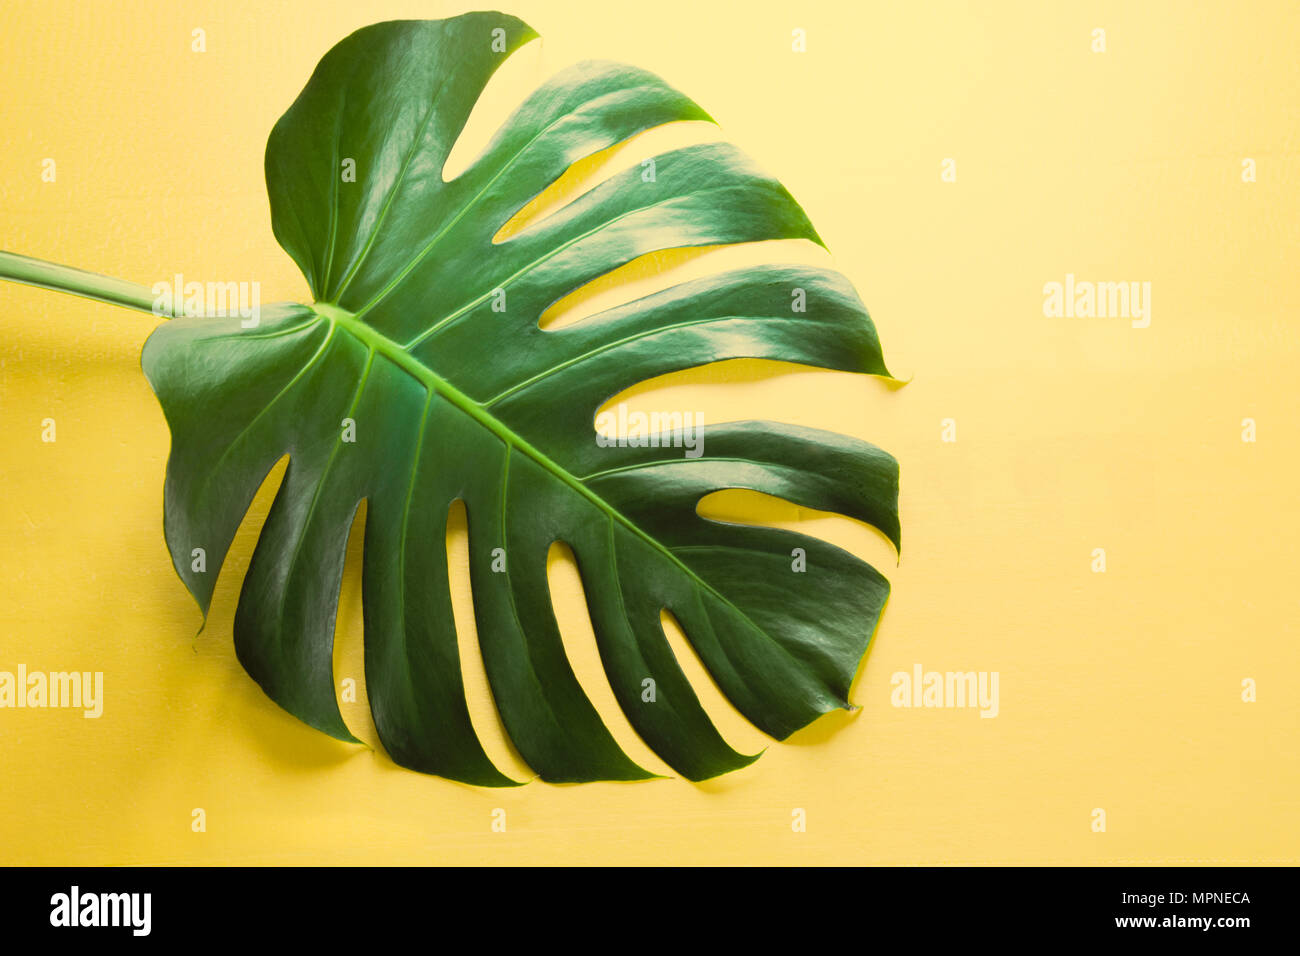 Single leaf of Monstera on yellow background. Close up, isolated with copy space. - Stock Image